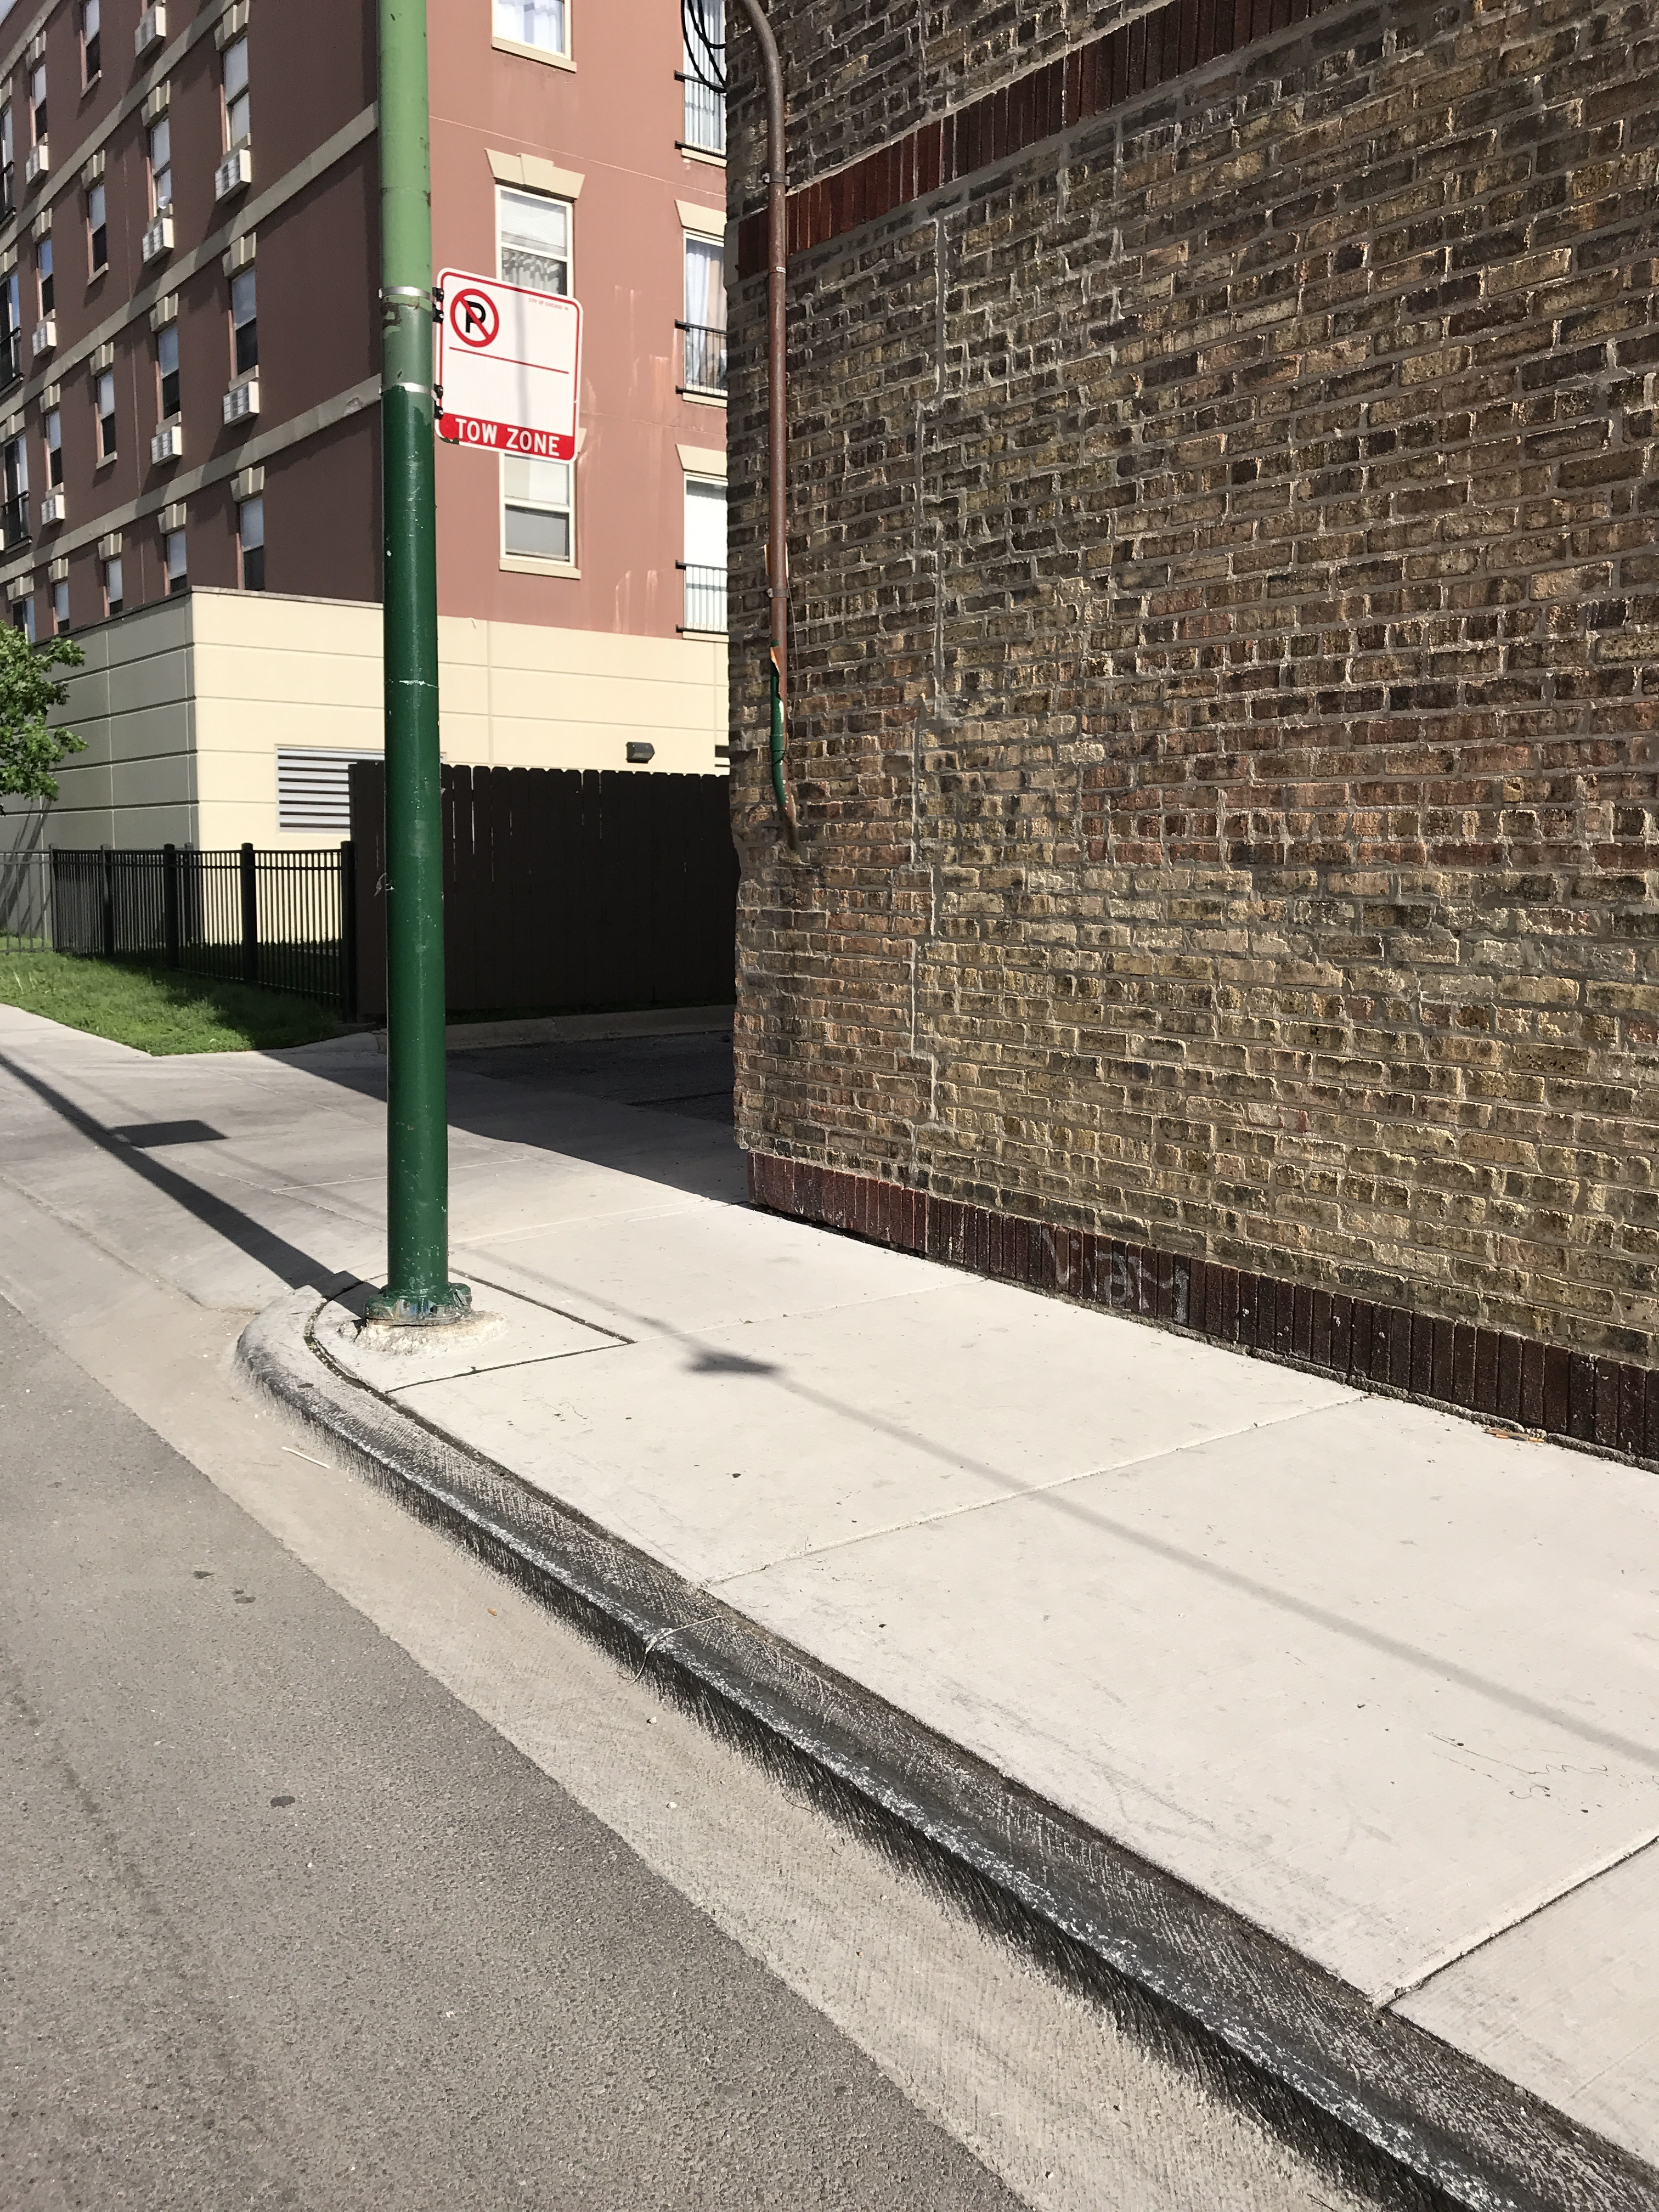 Photo of a waxed curb on Bloomingdale street